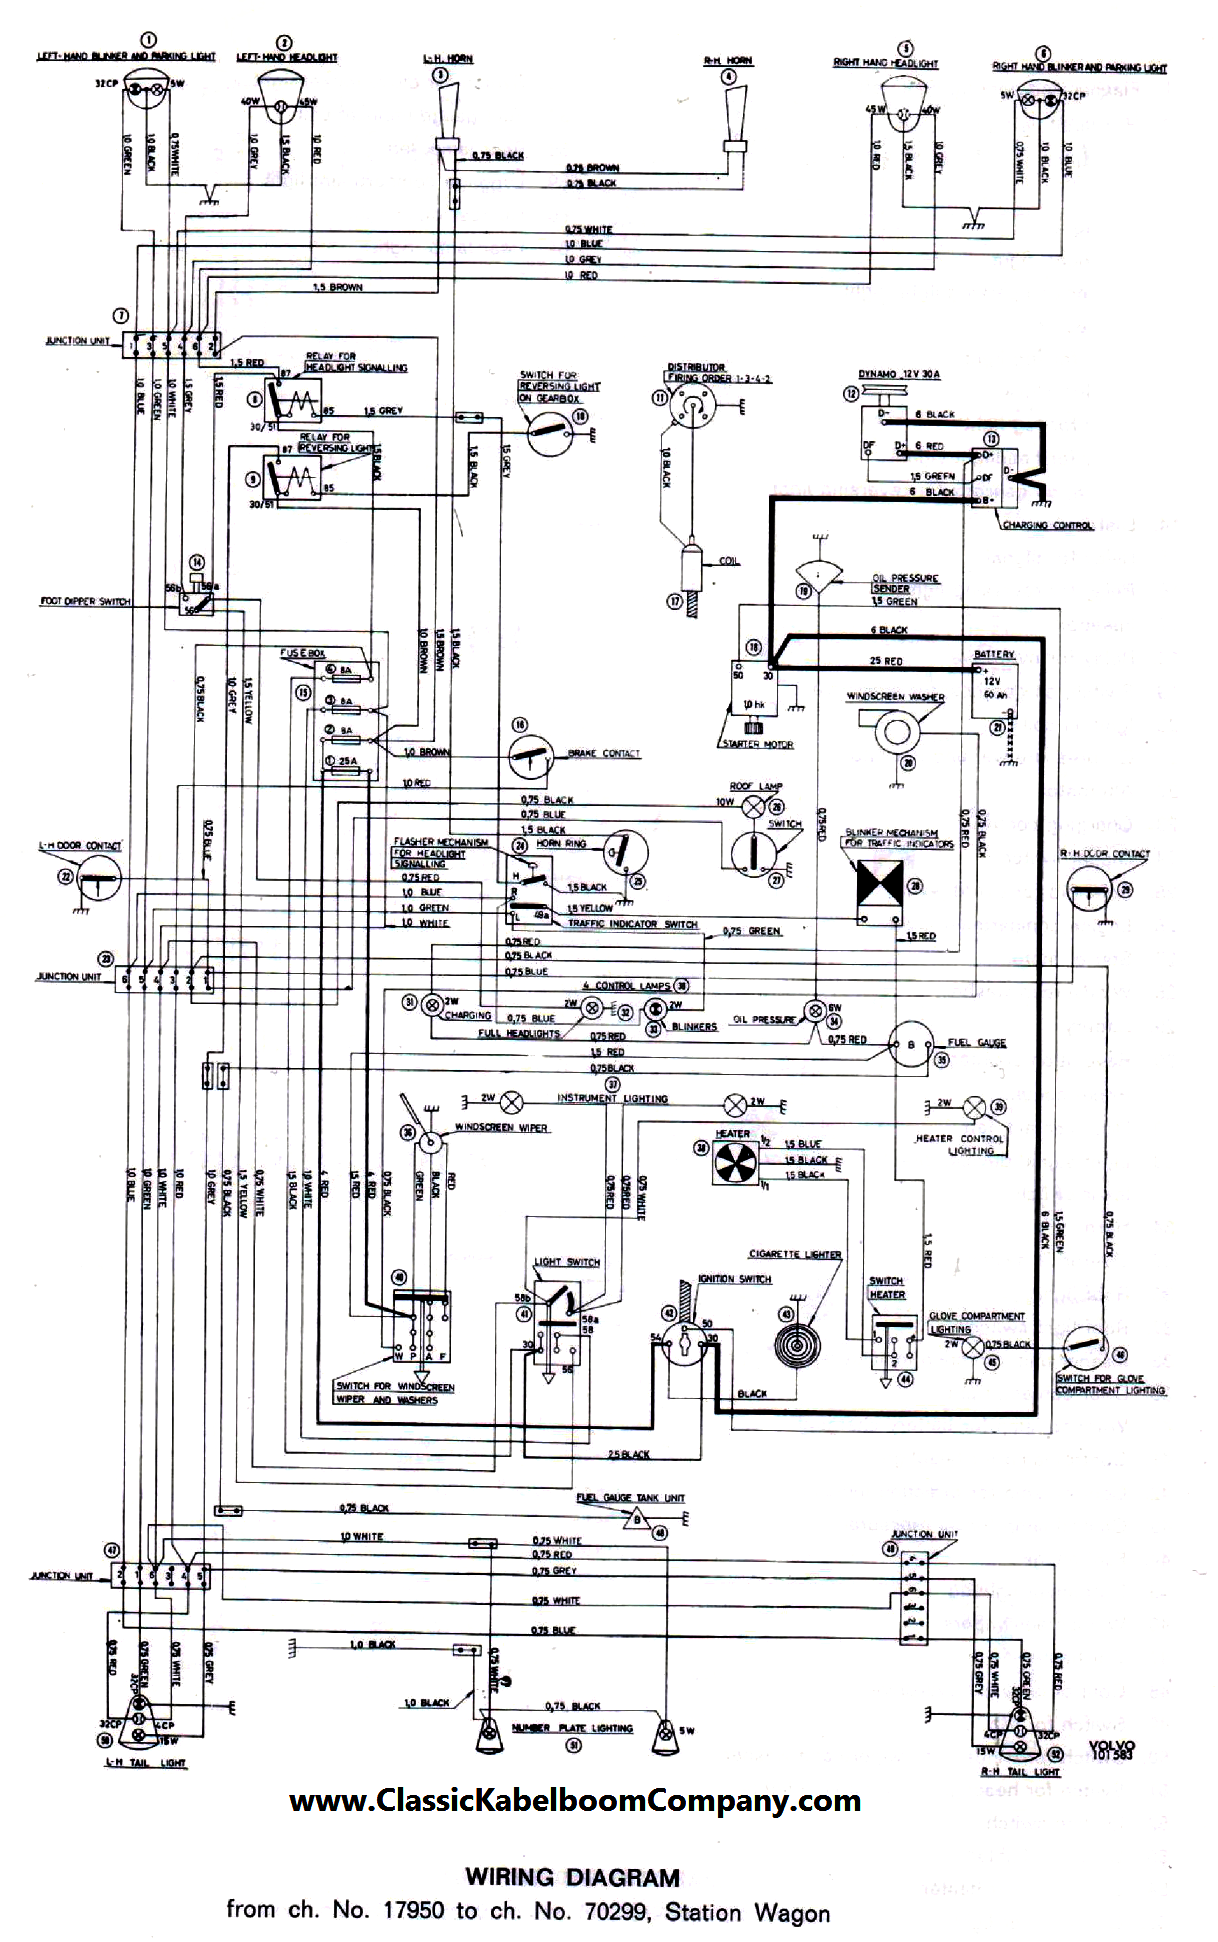 vol11?cdp=a classic kabelboom company elektrisch bedrading schema volvo volvo amazon wiring diagram at fashall.co